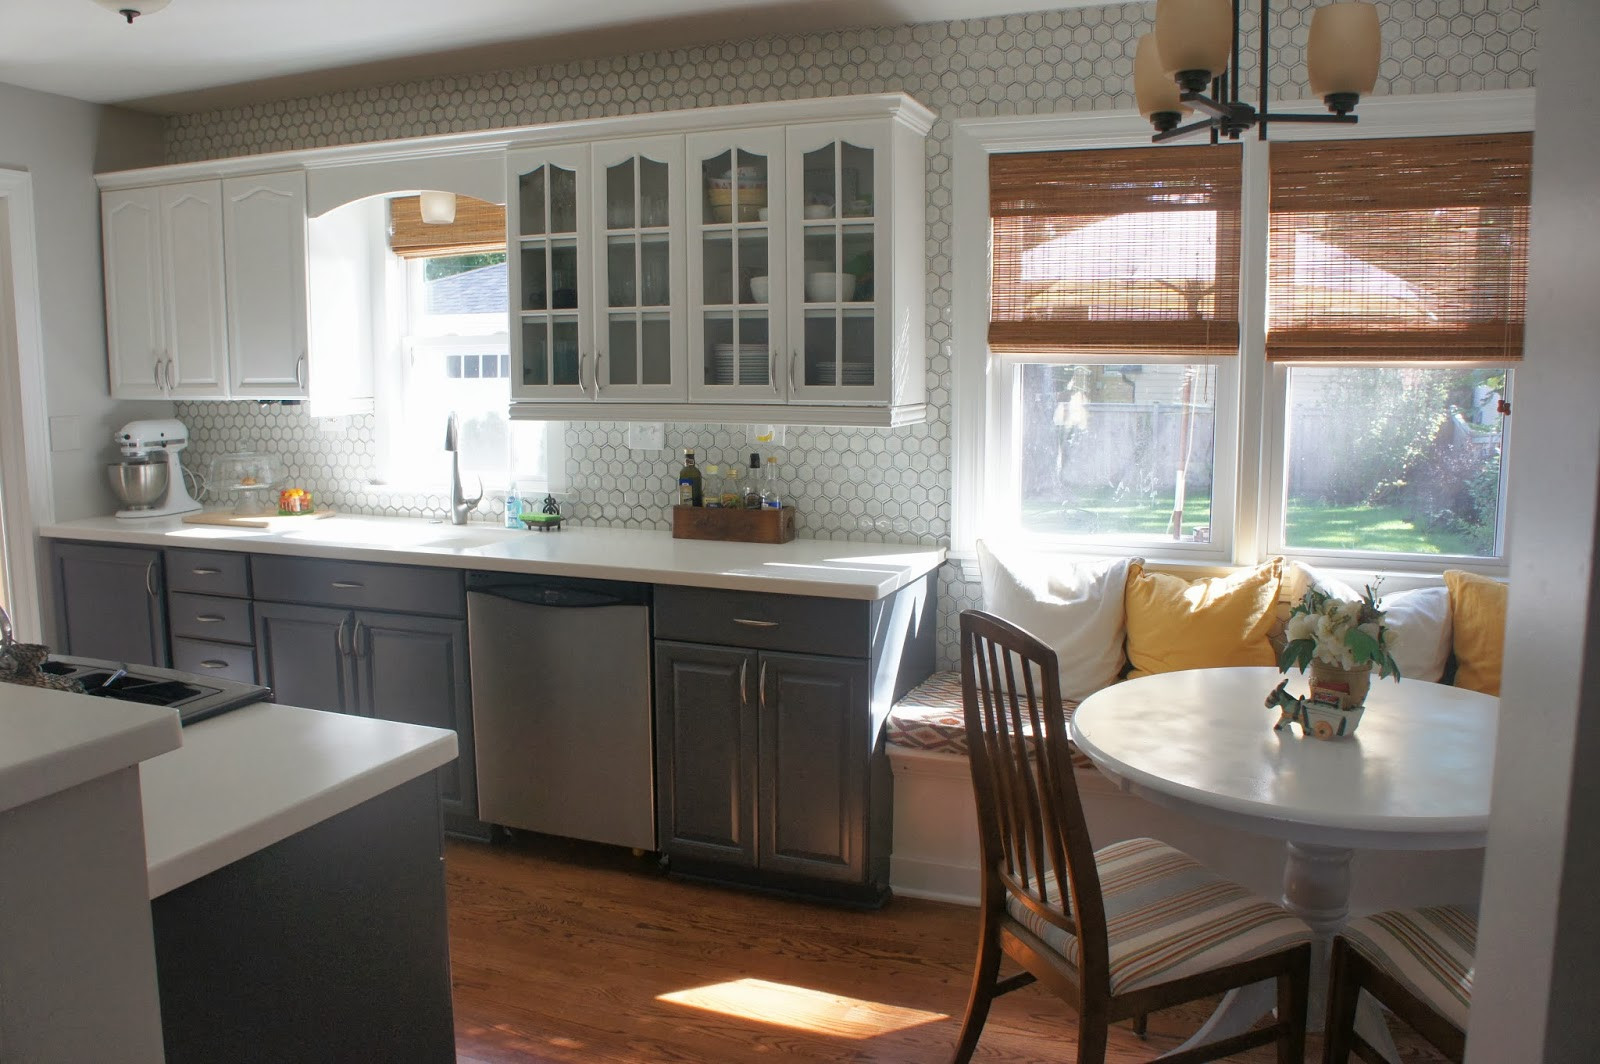 Best ideas about White And Grey Kitchen Ideas . Save or Pin 15 Inspiring Grey Kitchen Cabinet Design Ideas Now.